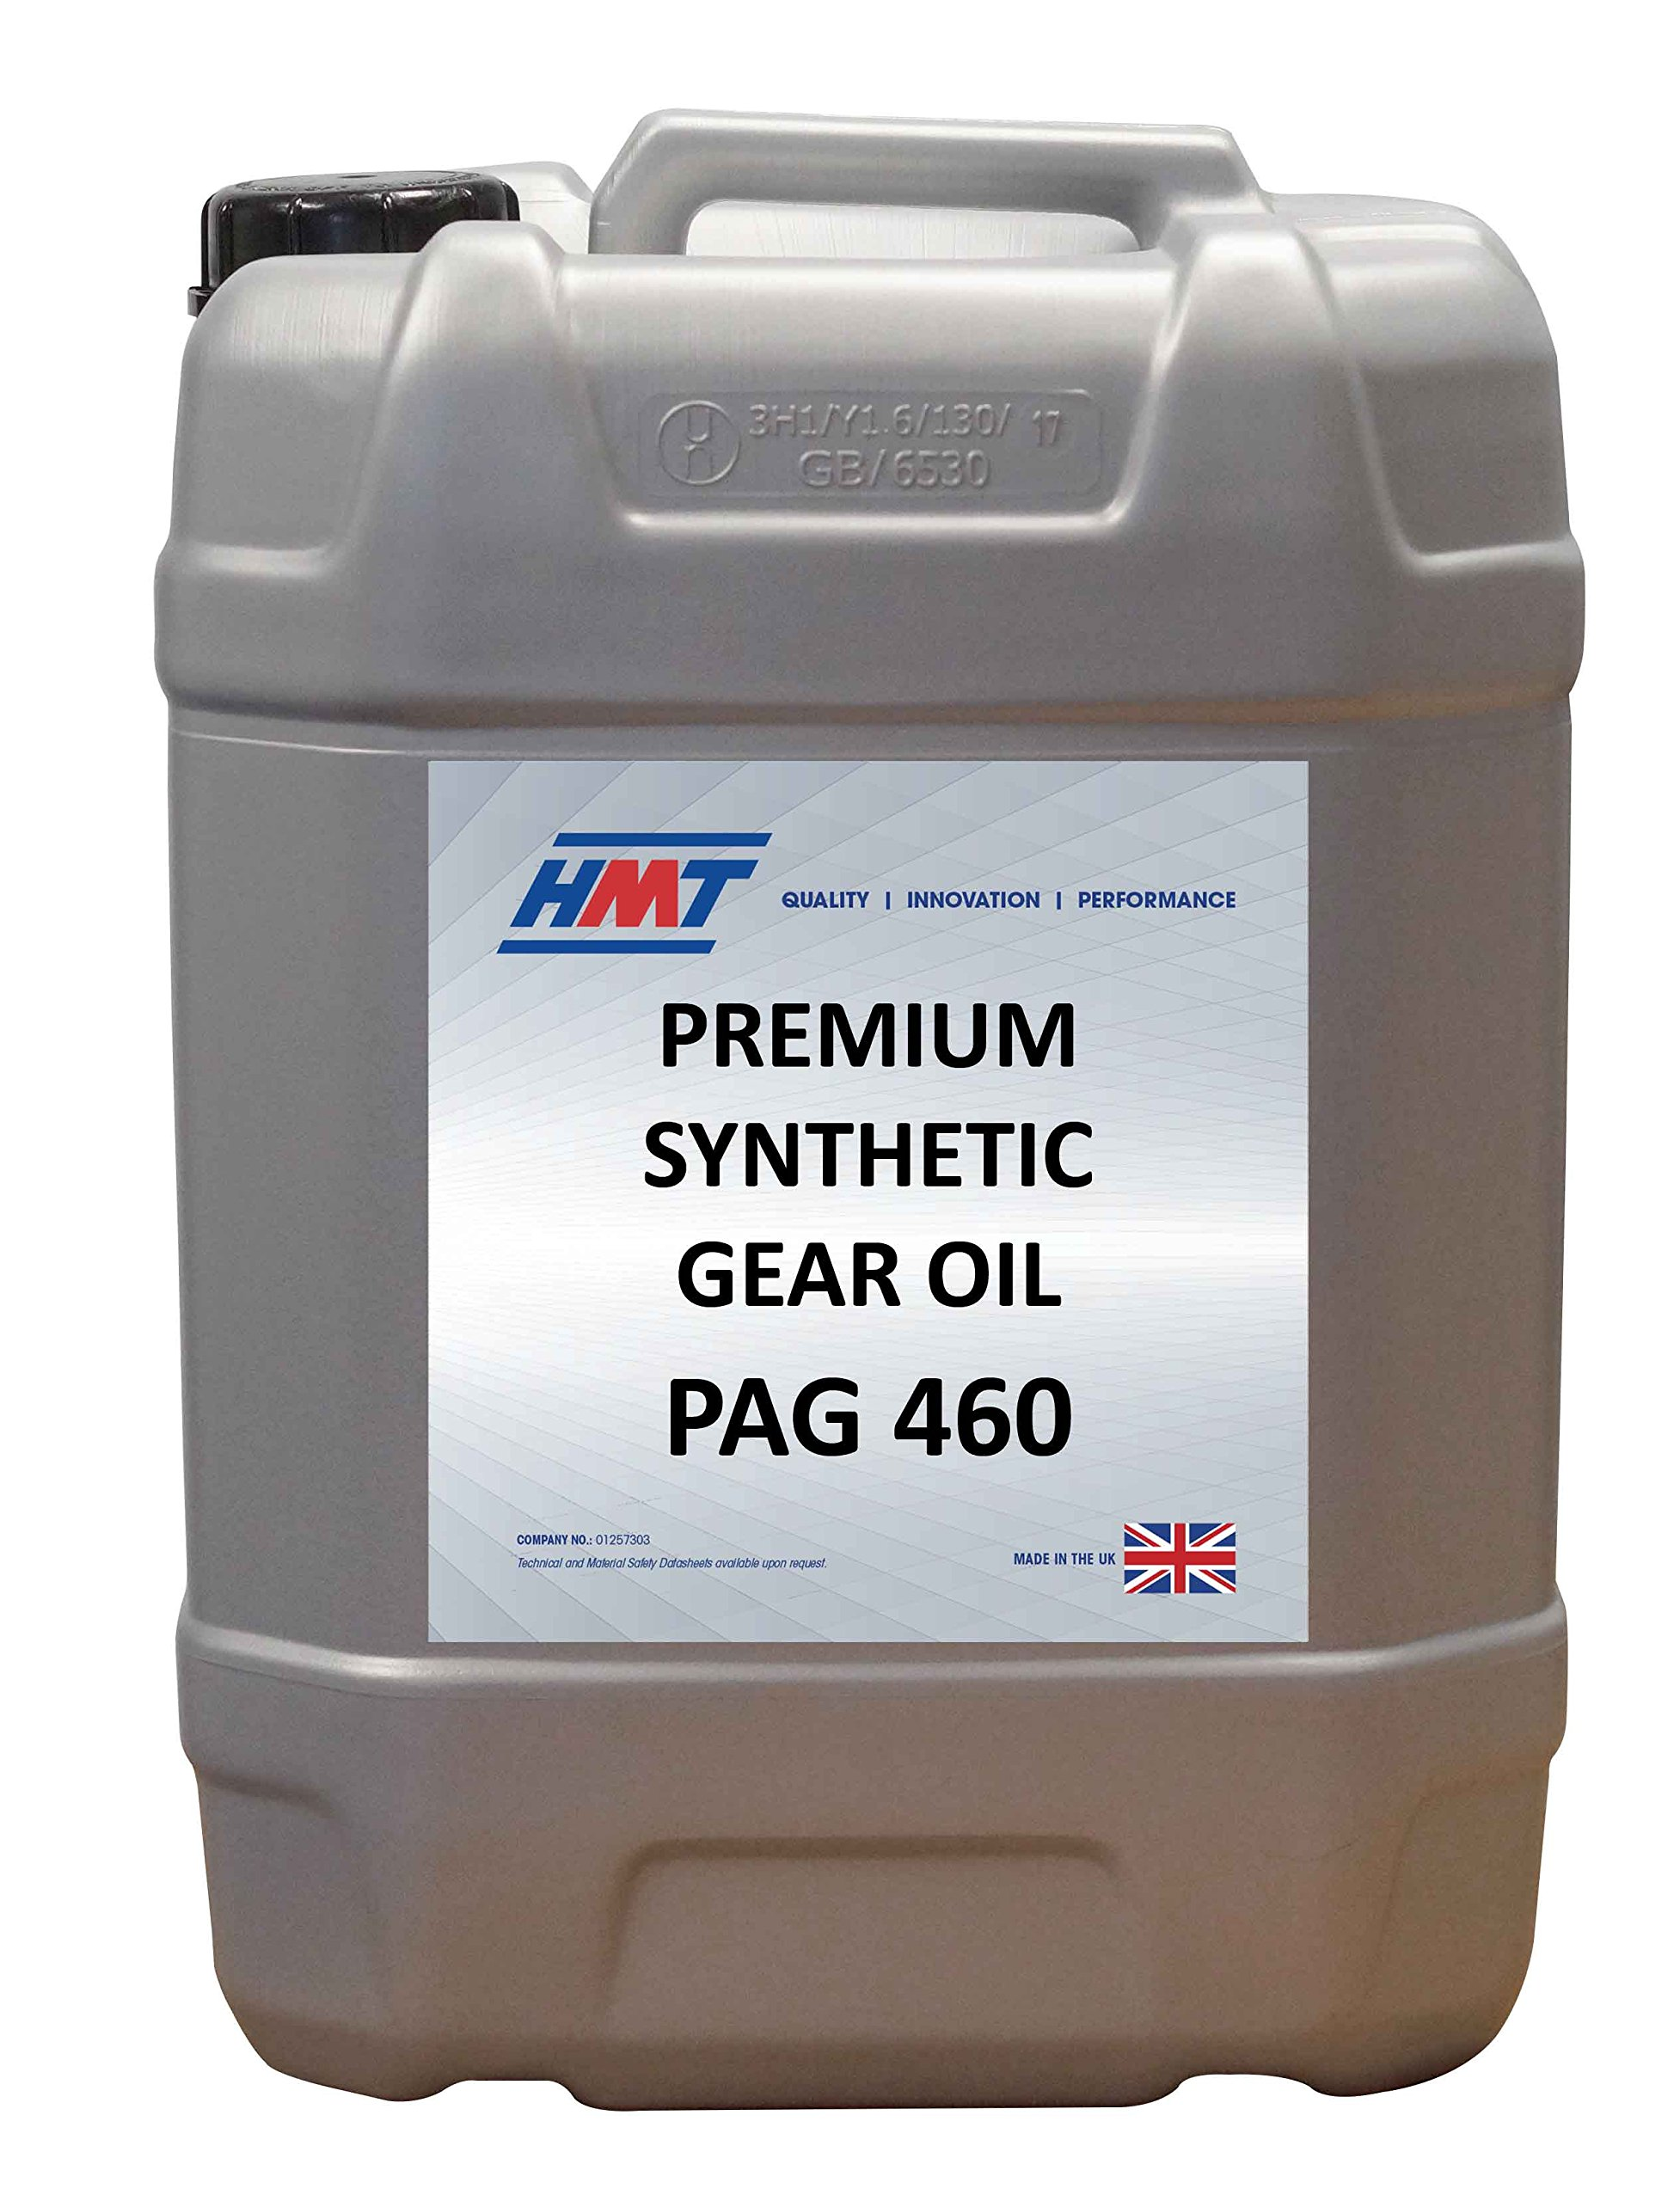 HMTG048 Premium Synthetic Industrial Gear Oil PAG 460 - 25 Litre Plastic by HMT